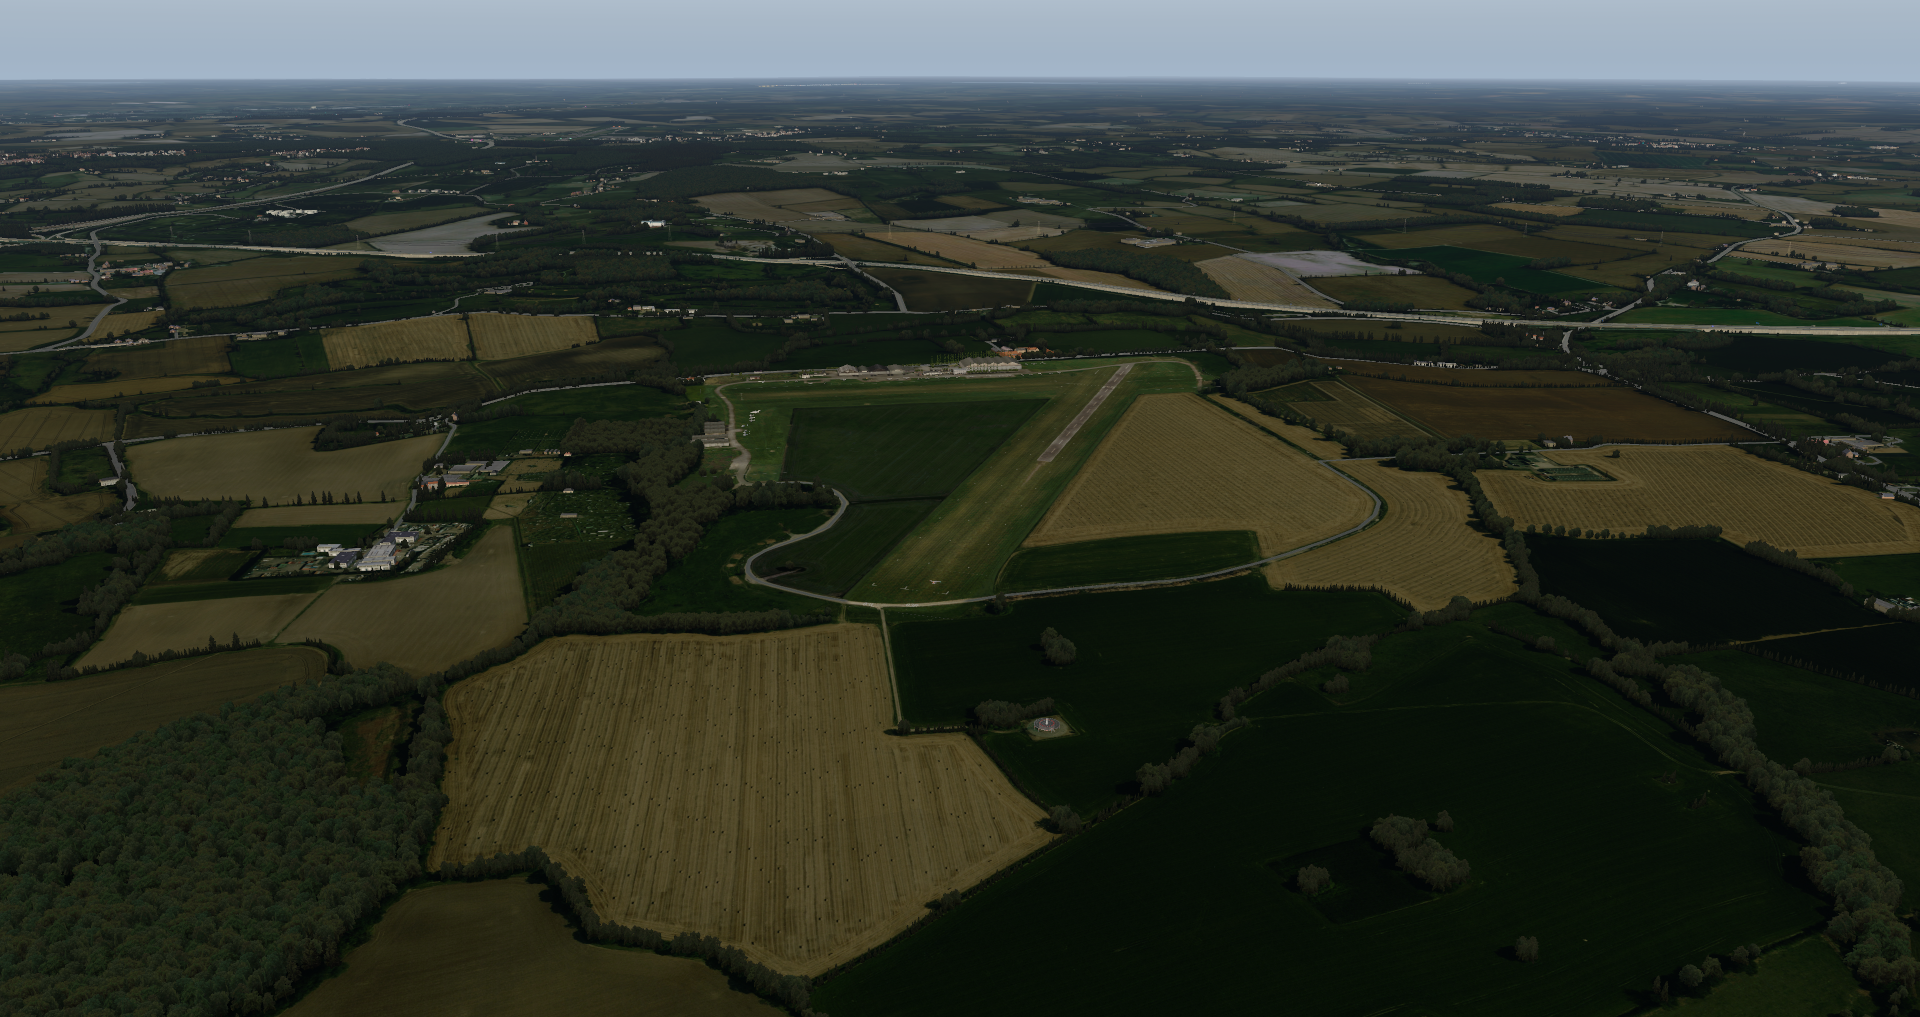 Orbx 2019: FTX Global comes to X-Plane, LOWI & KEGE announced